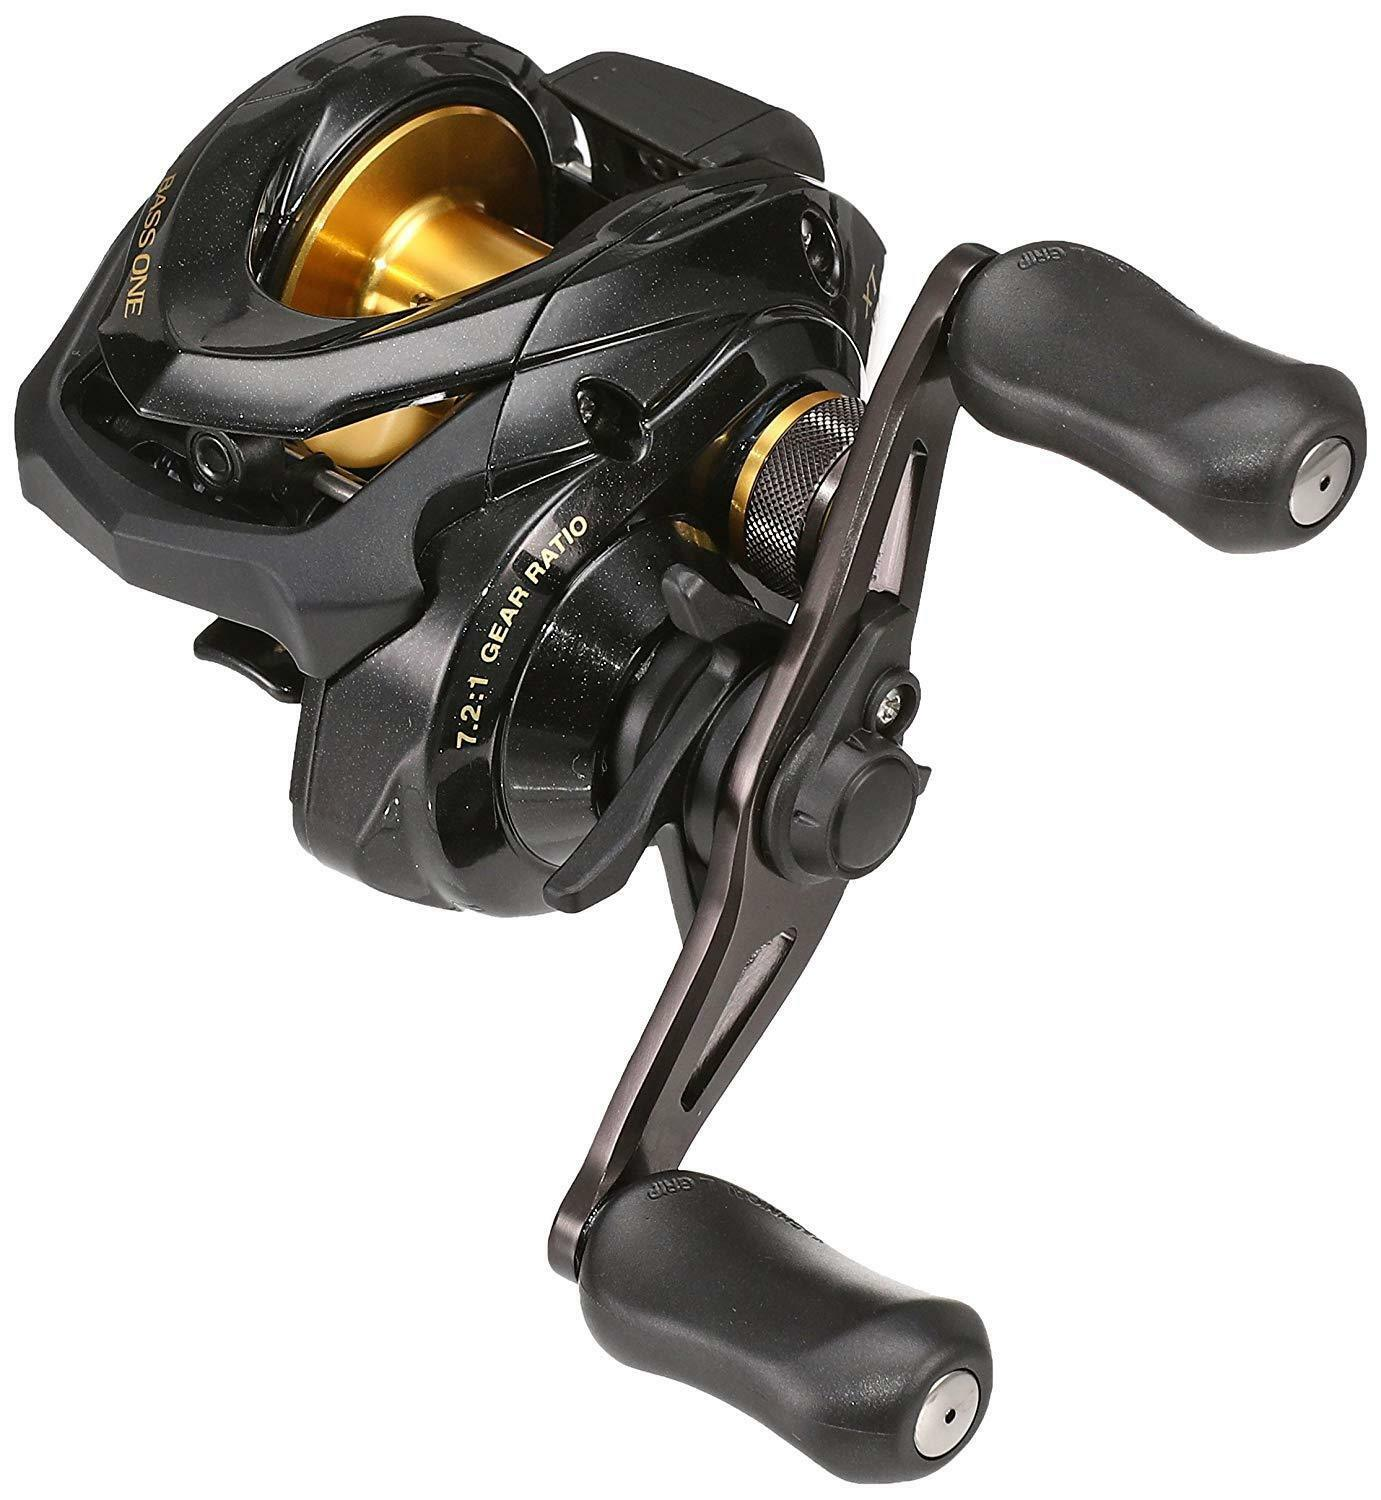 SHIMANO 17 BASS ONE XT 151 Left-Handed Baitcasting Reel S A-RB SVS New in Box